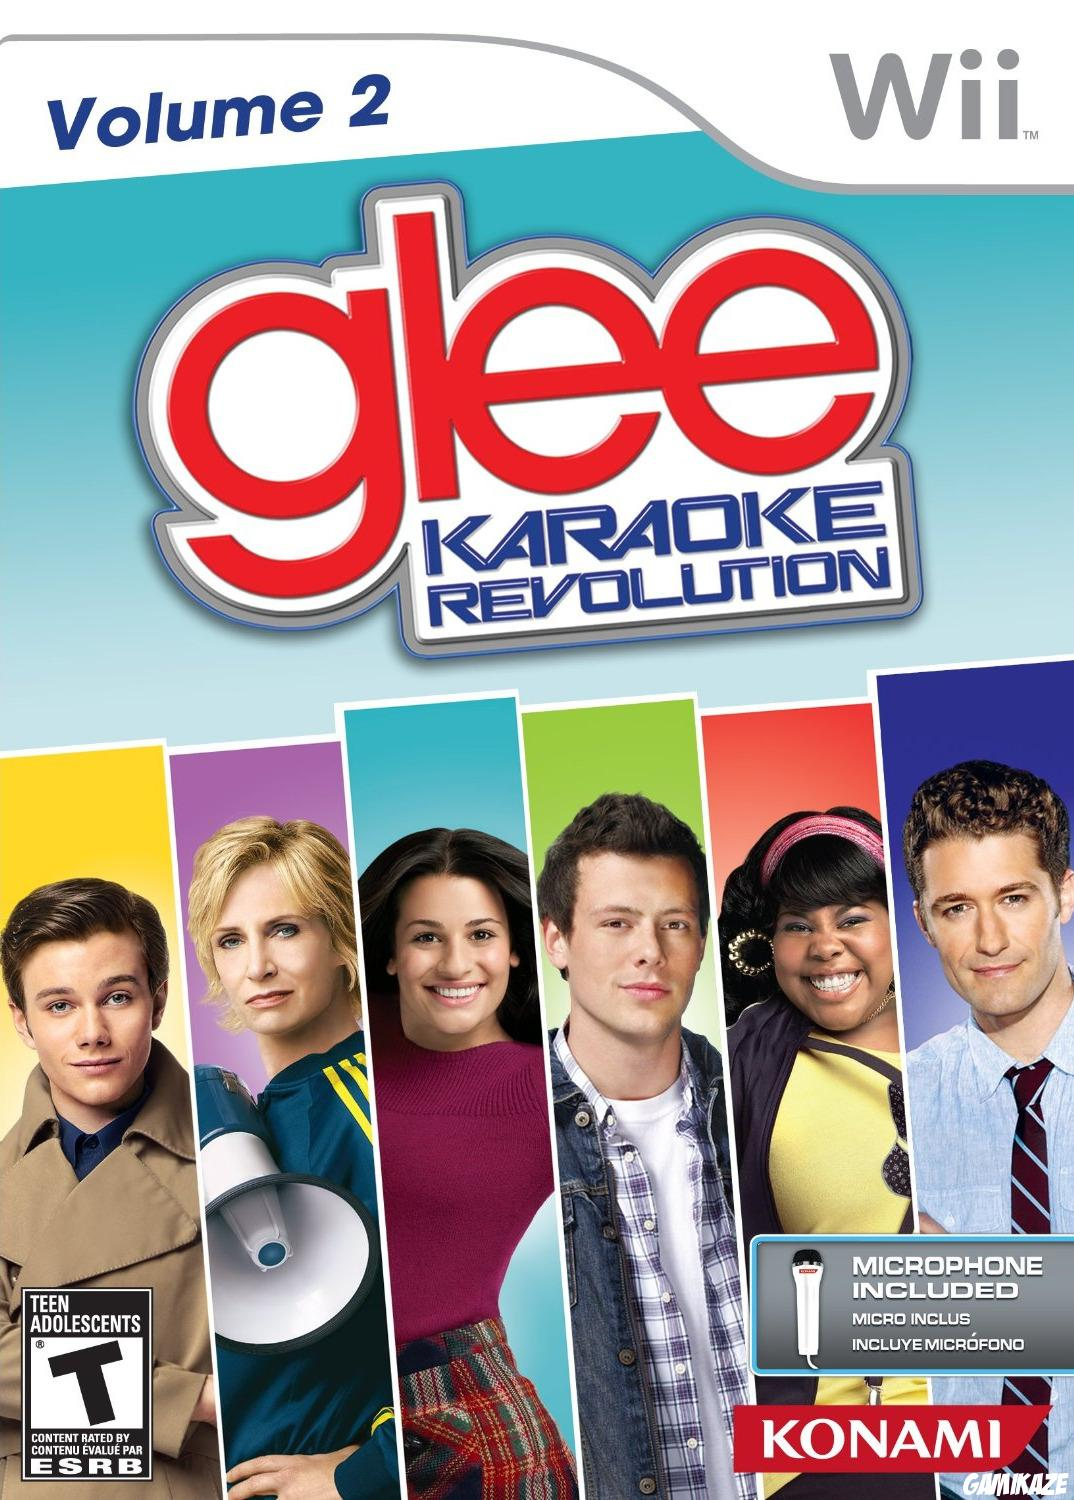 cover Glee Karaoke Revolution : Volume 2 wii